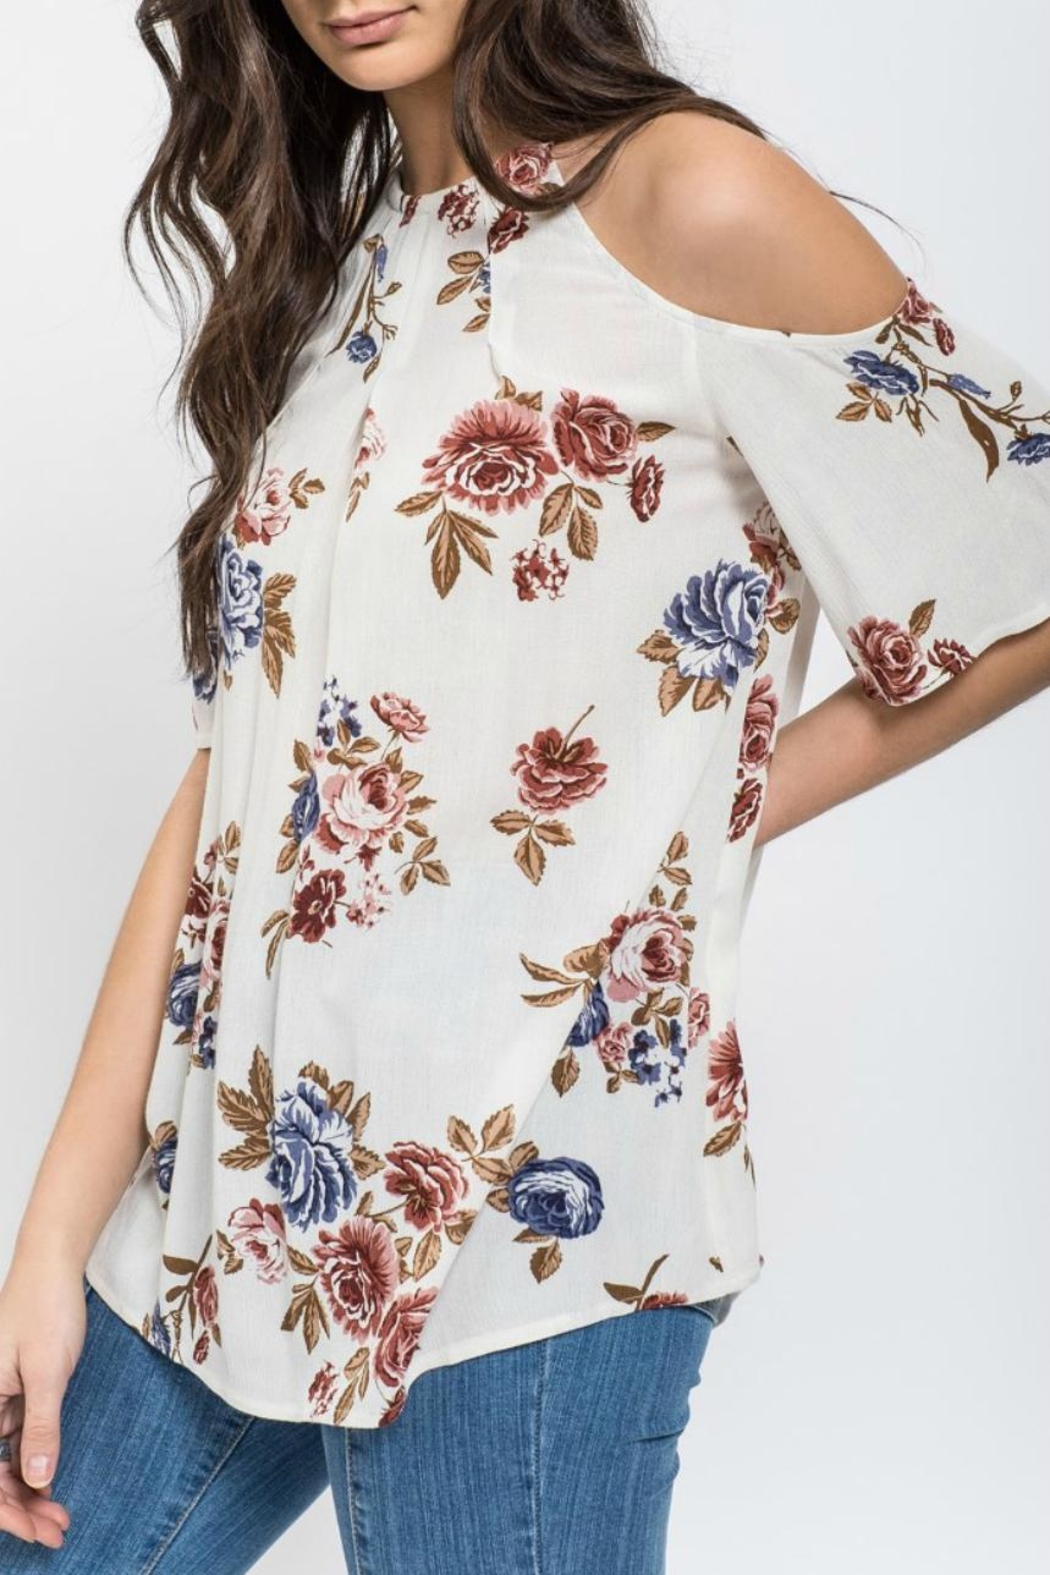 62f01123840 Blu Pepper Floral Cold Shoulder Top from Kansas by Seirer s Clothing ...